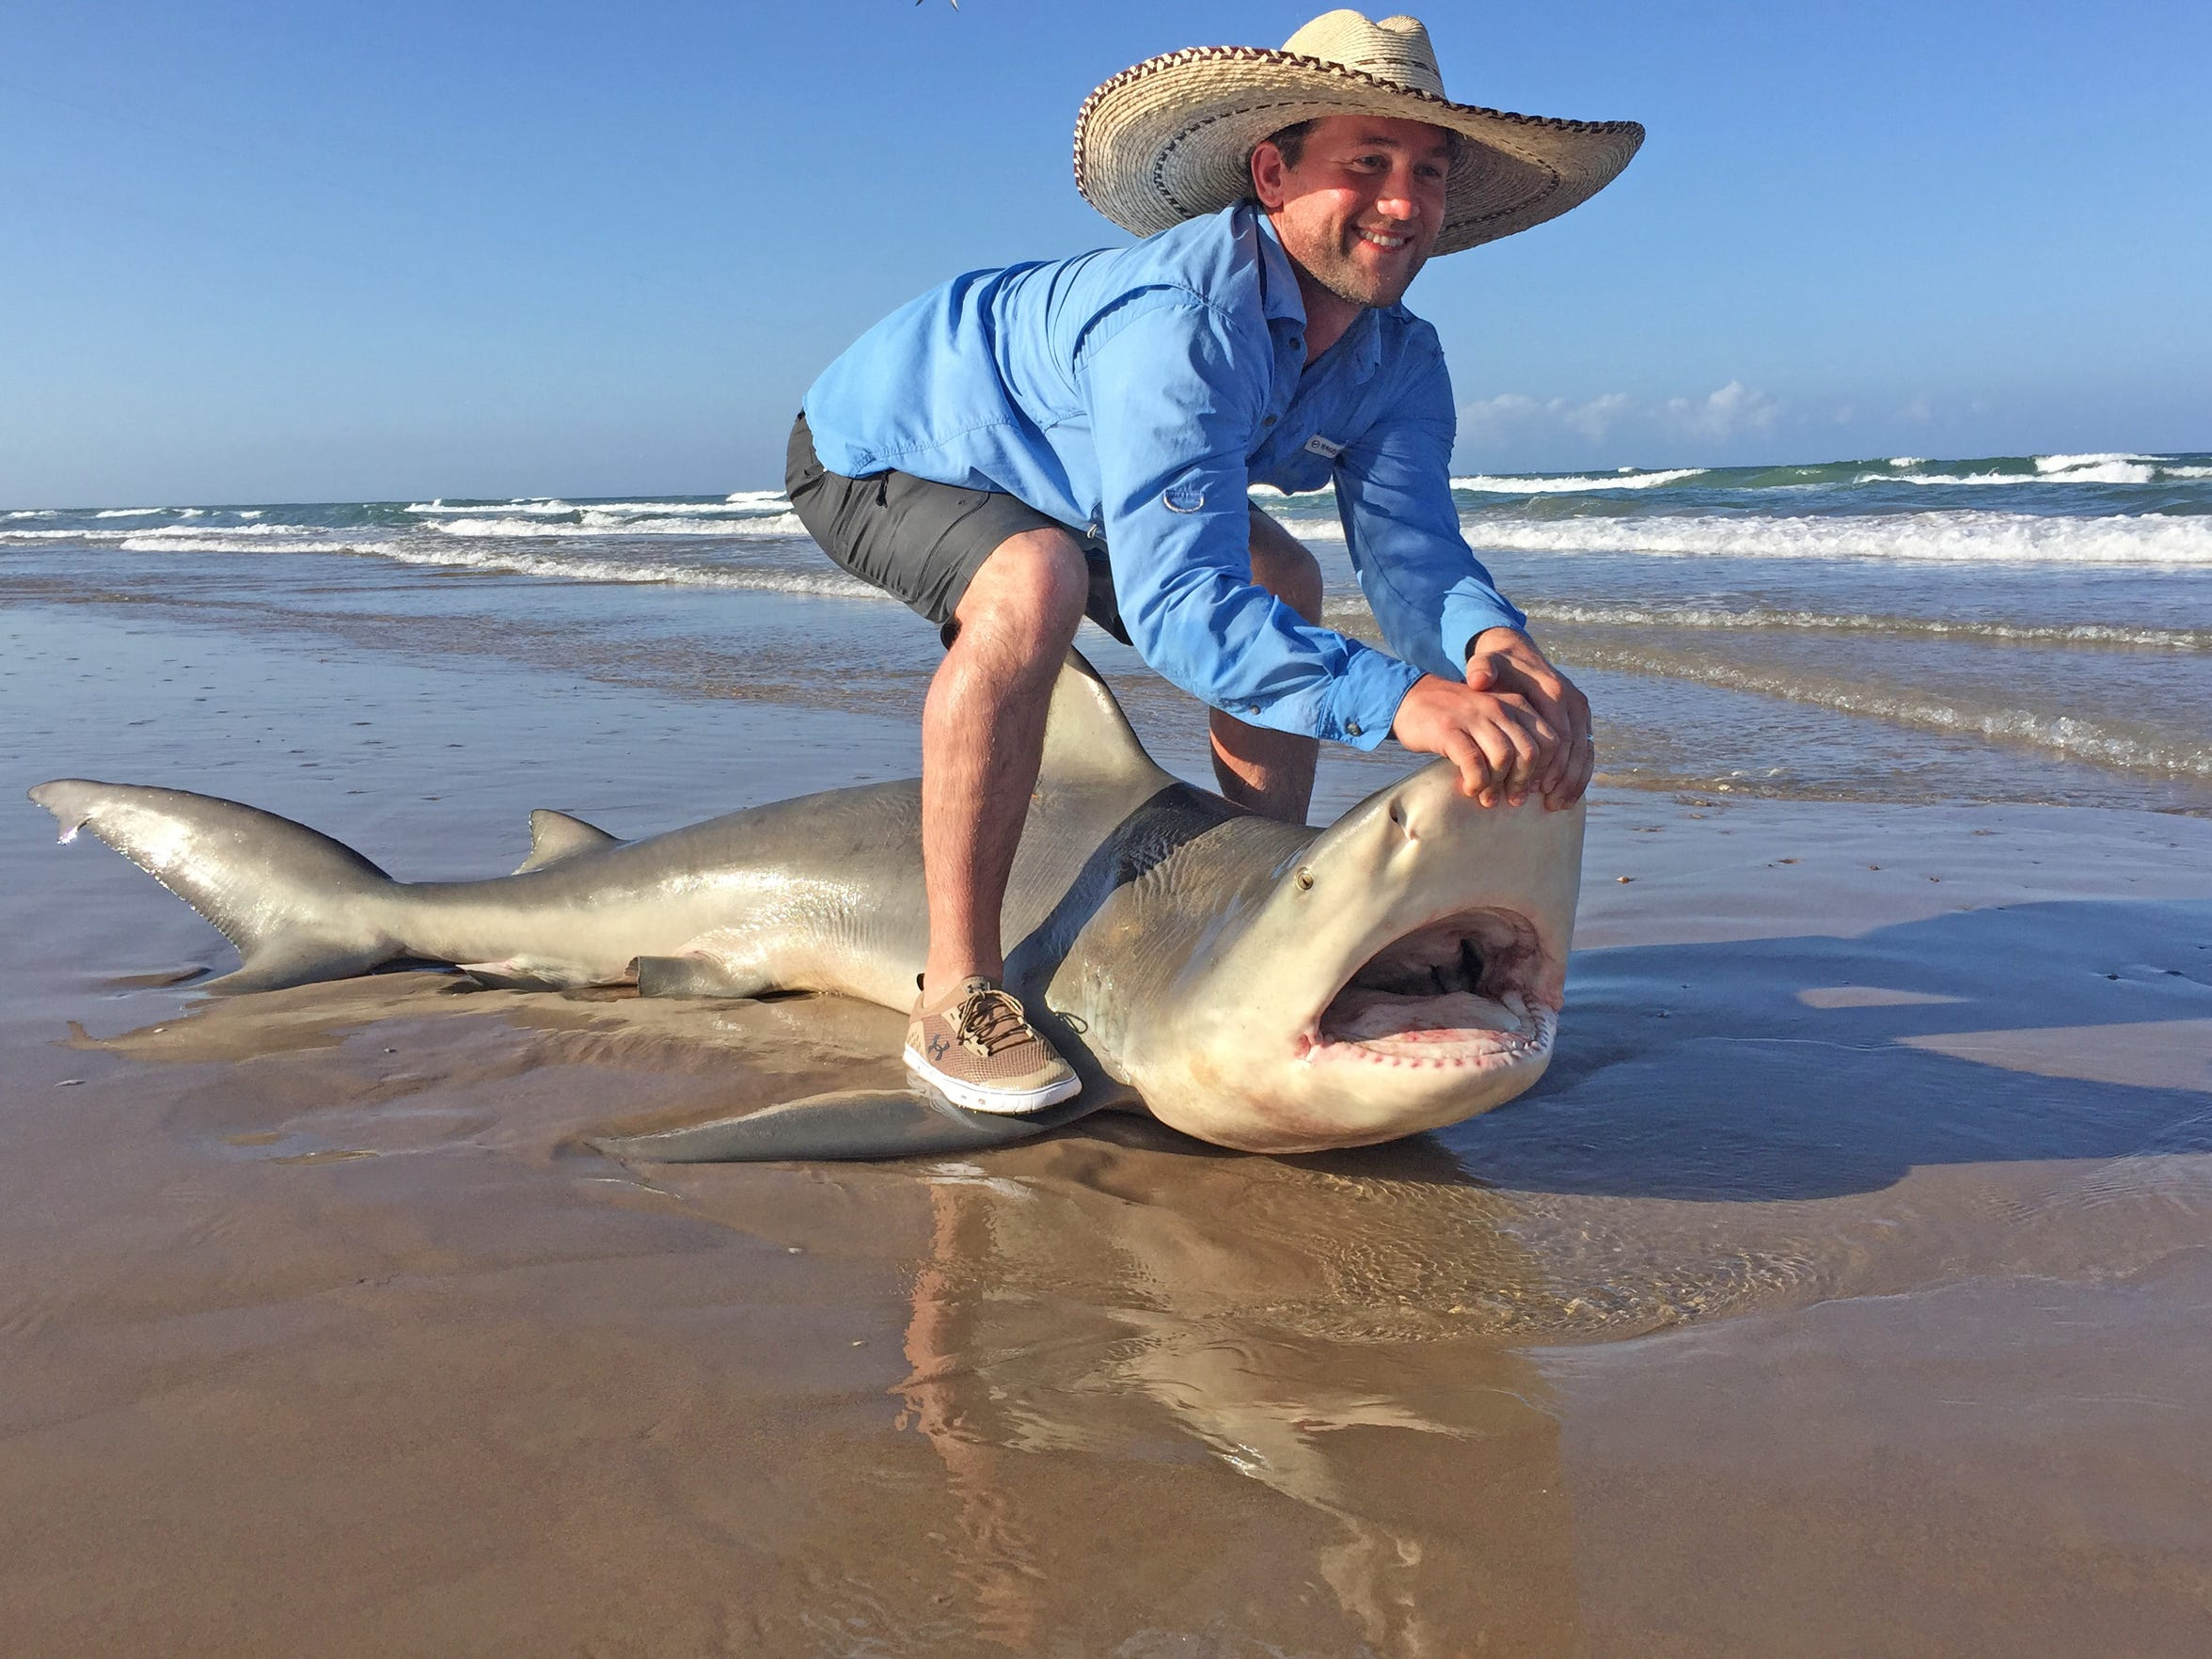 Aaron Martin, of Rogers, caught this 8-foot bull shark